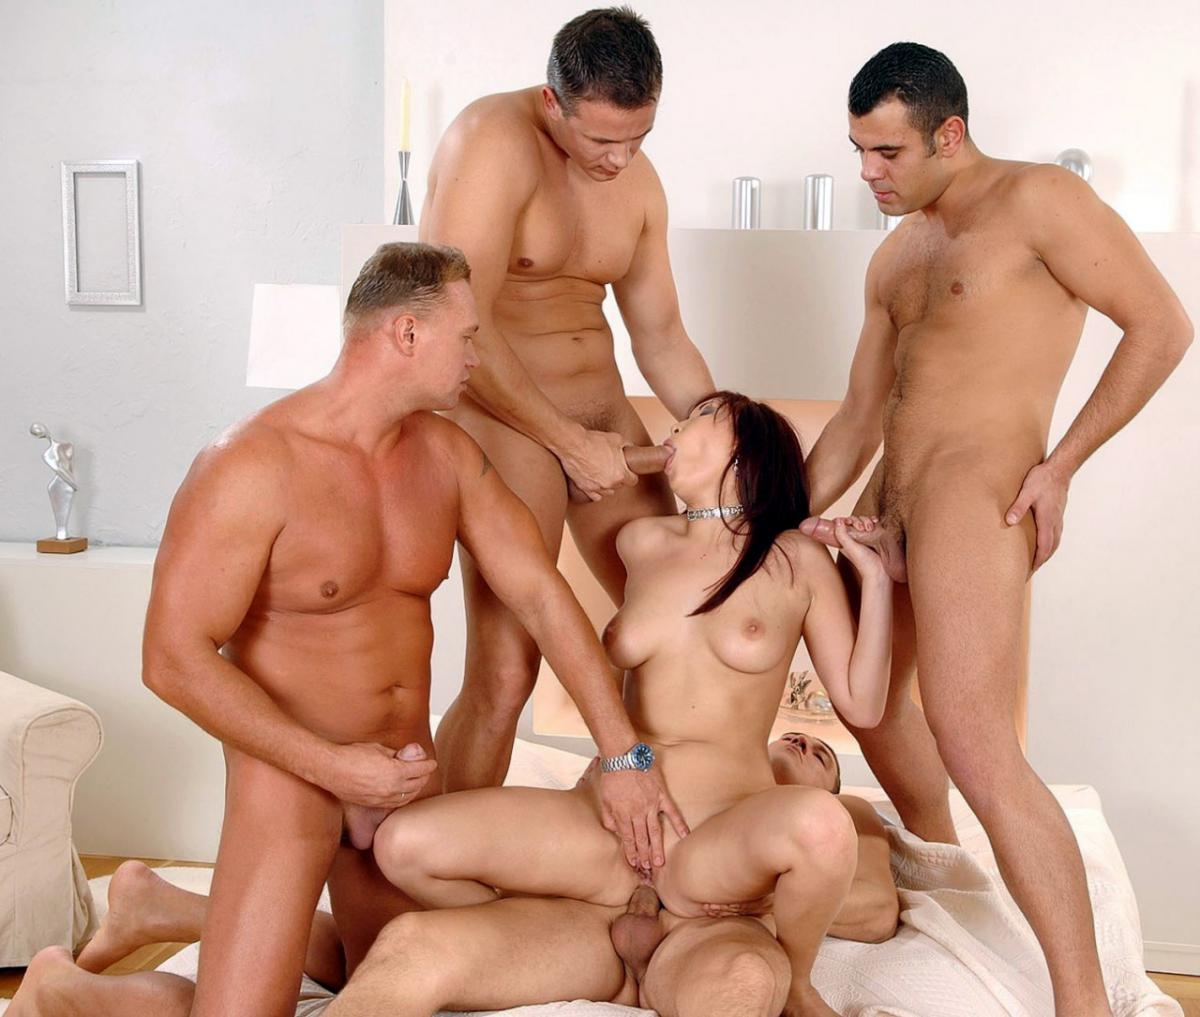 Sorry, Free asian gang bang pics business